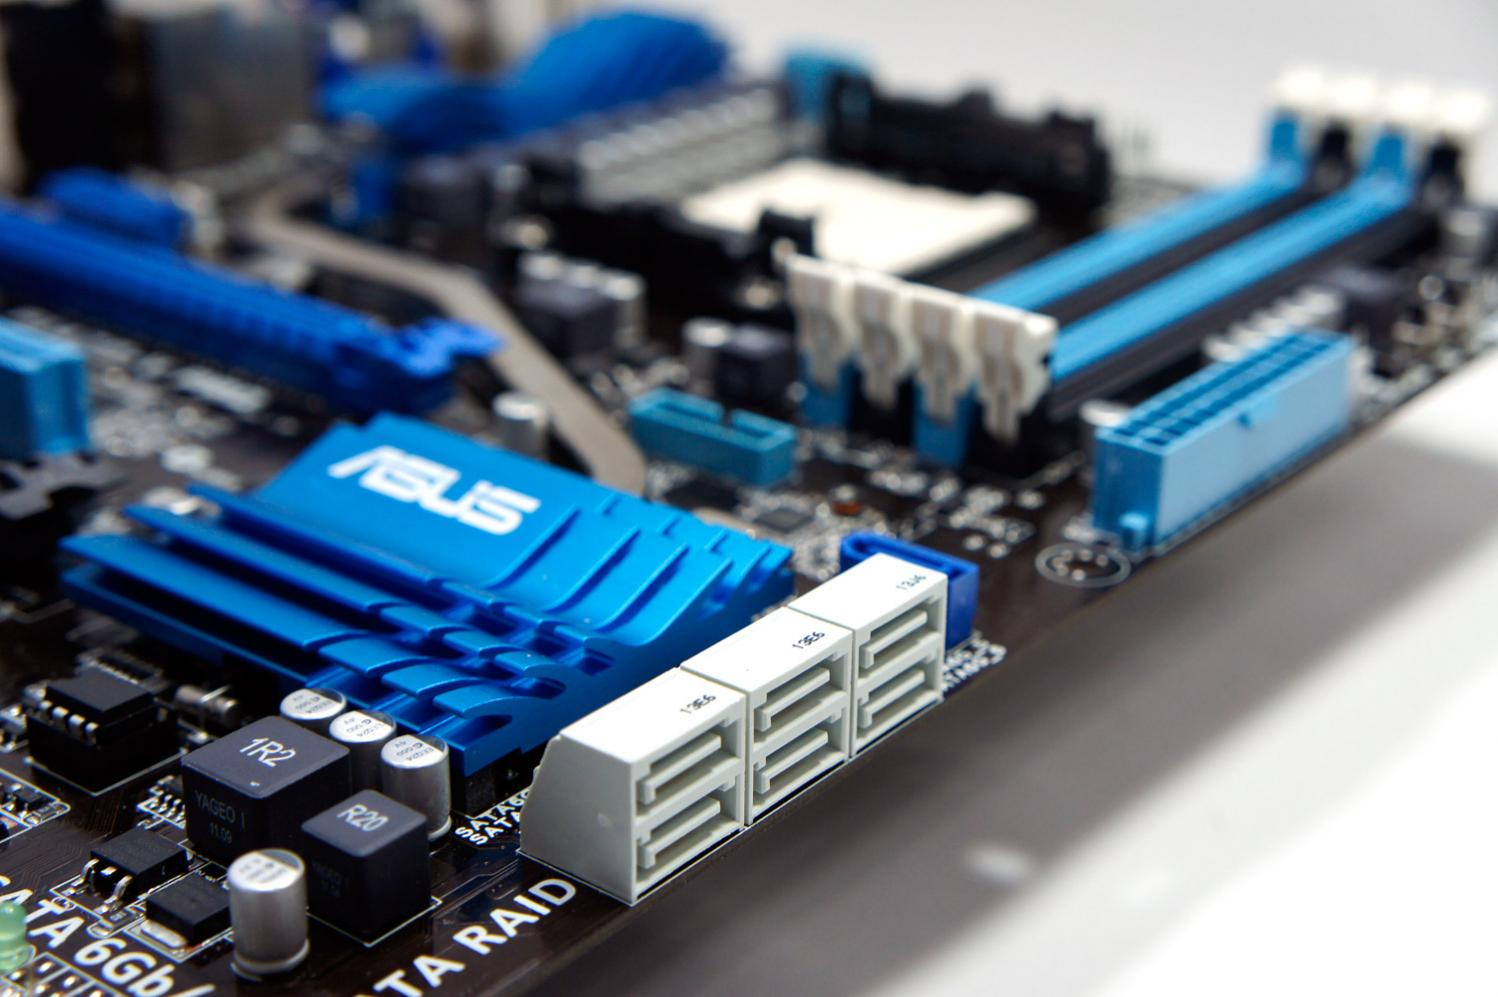 asus f1a75 v pro SATA 6Gbps